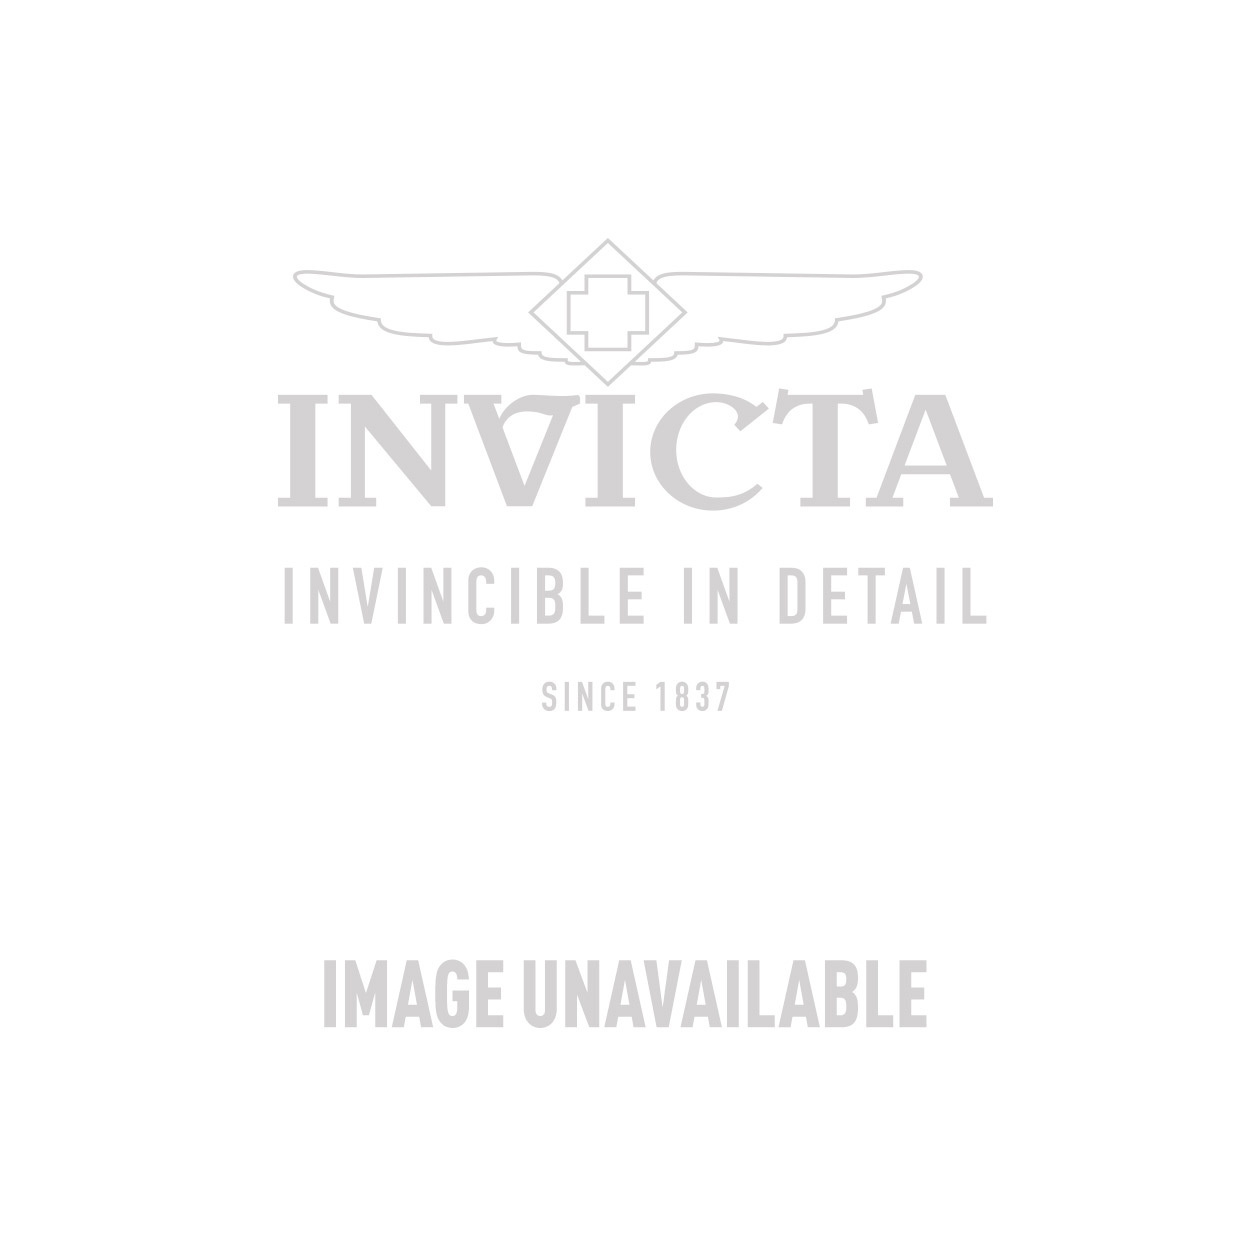 Invicta Aviator Quartz Watch - Stainless Steel case with Grey tone Nylon band - Model 18780